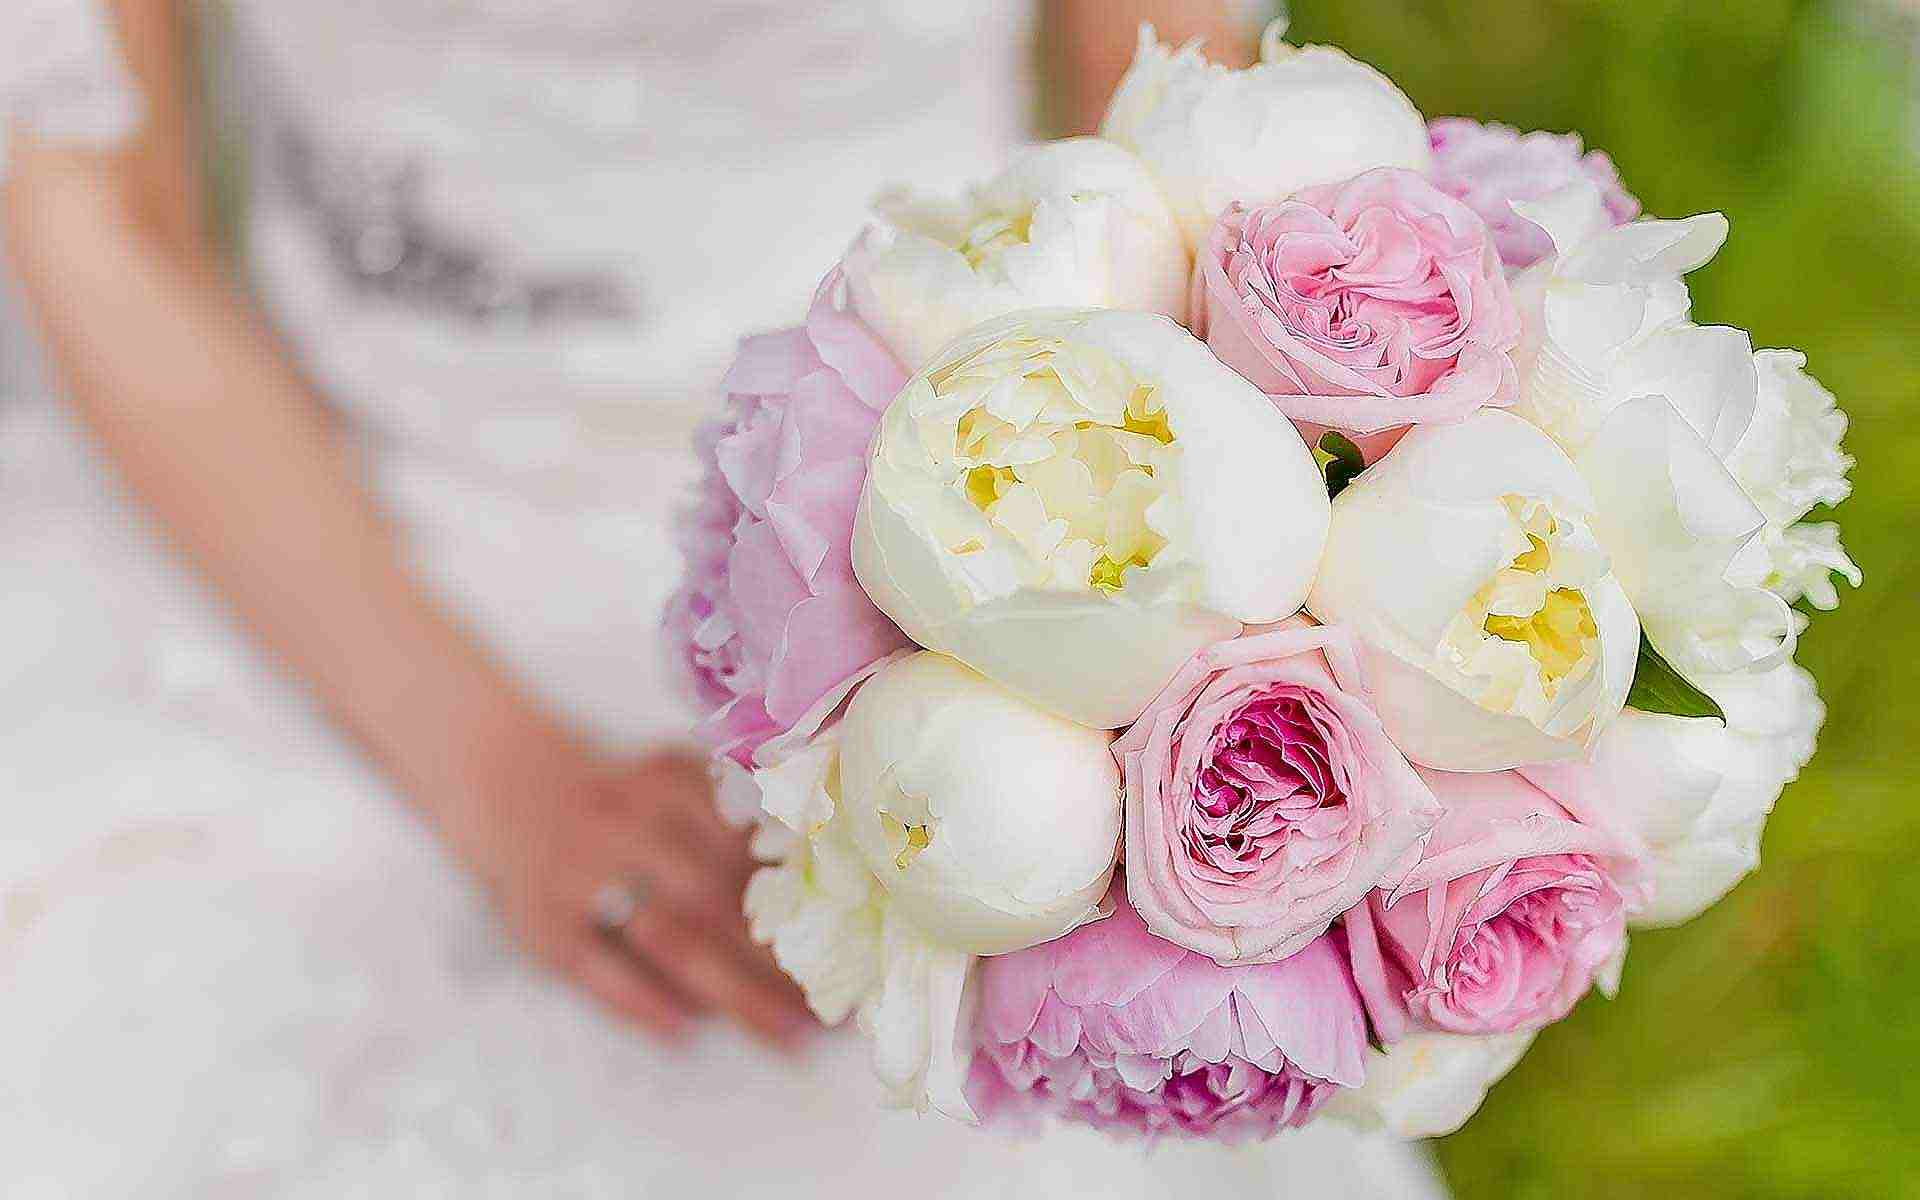 Bursting-Blush-And-White-Ranunculus-Make-For-A-Gorgeous-Bridal-Bouquet